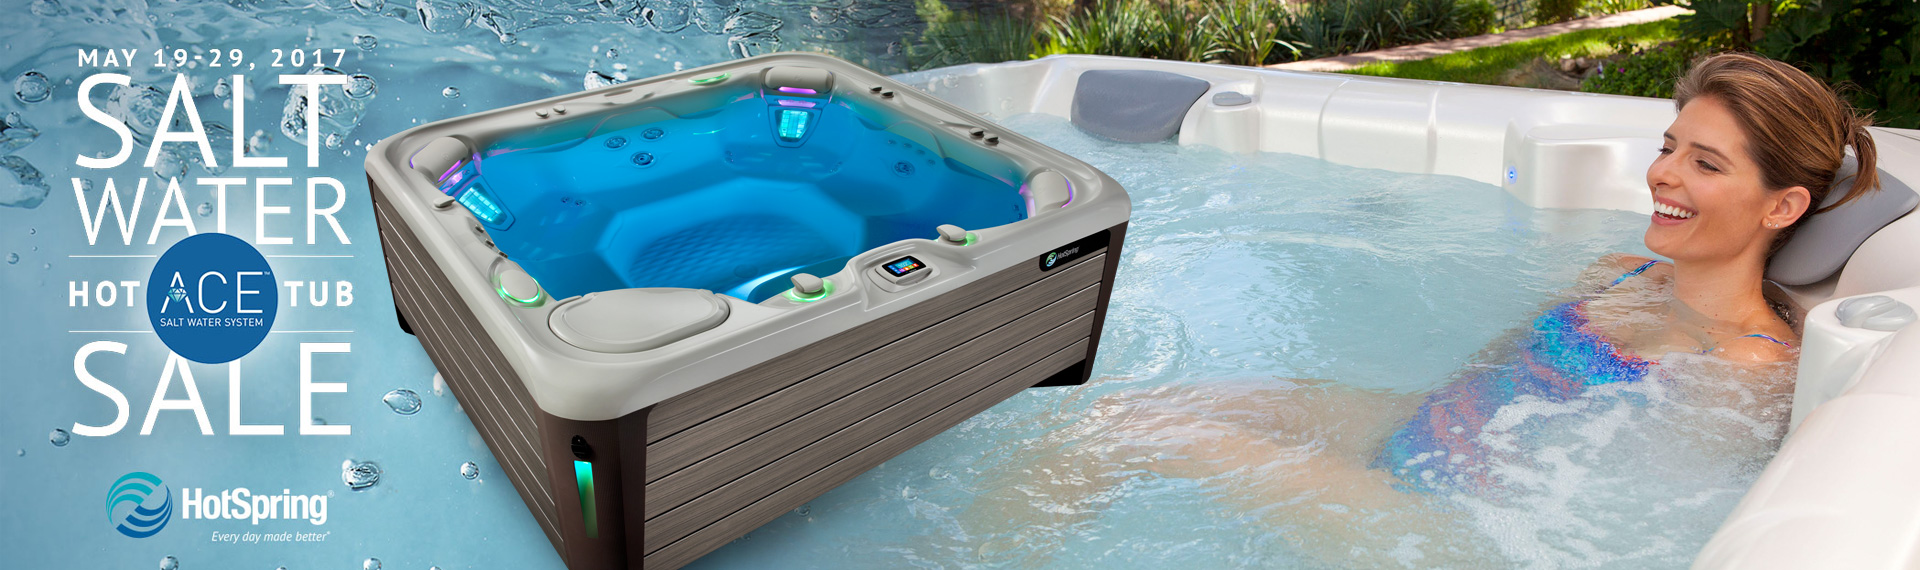 HotSpring FREE Ace Salt water System